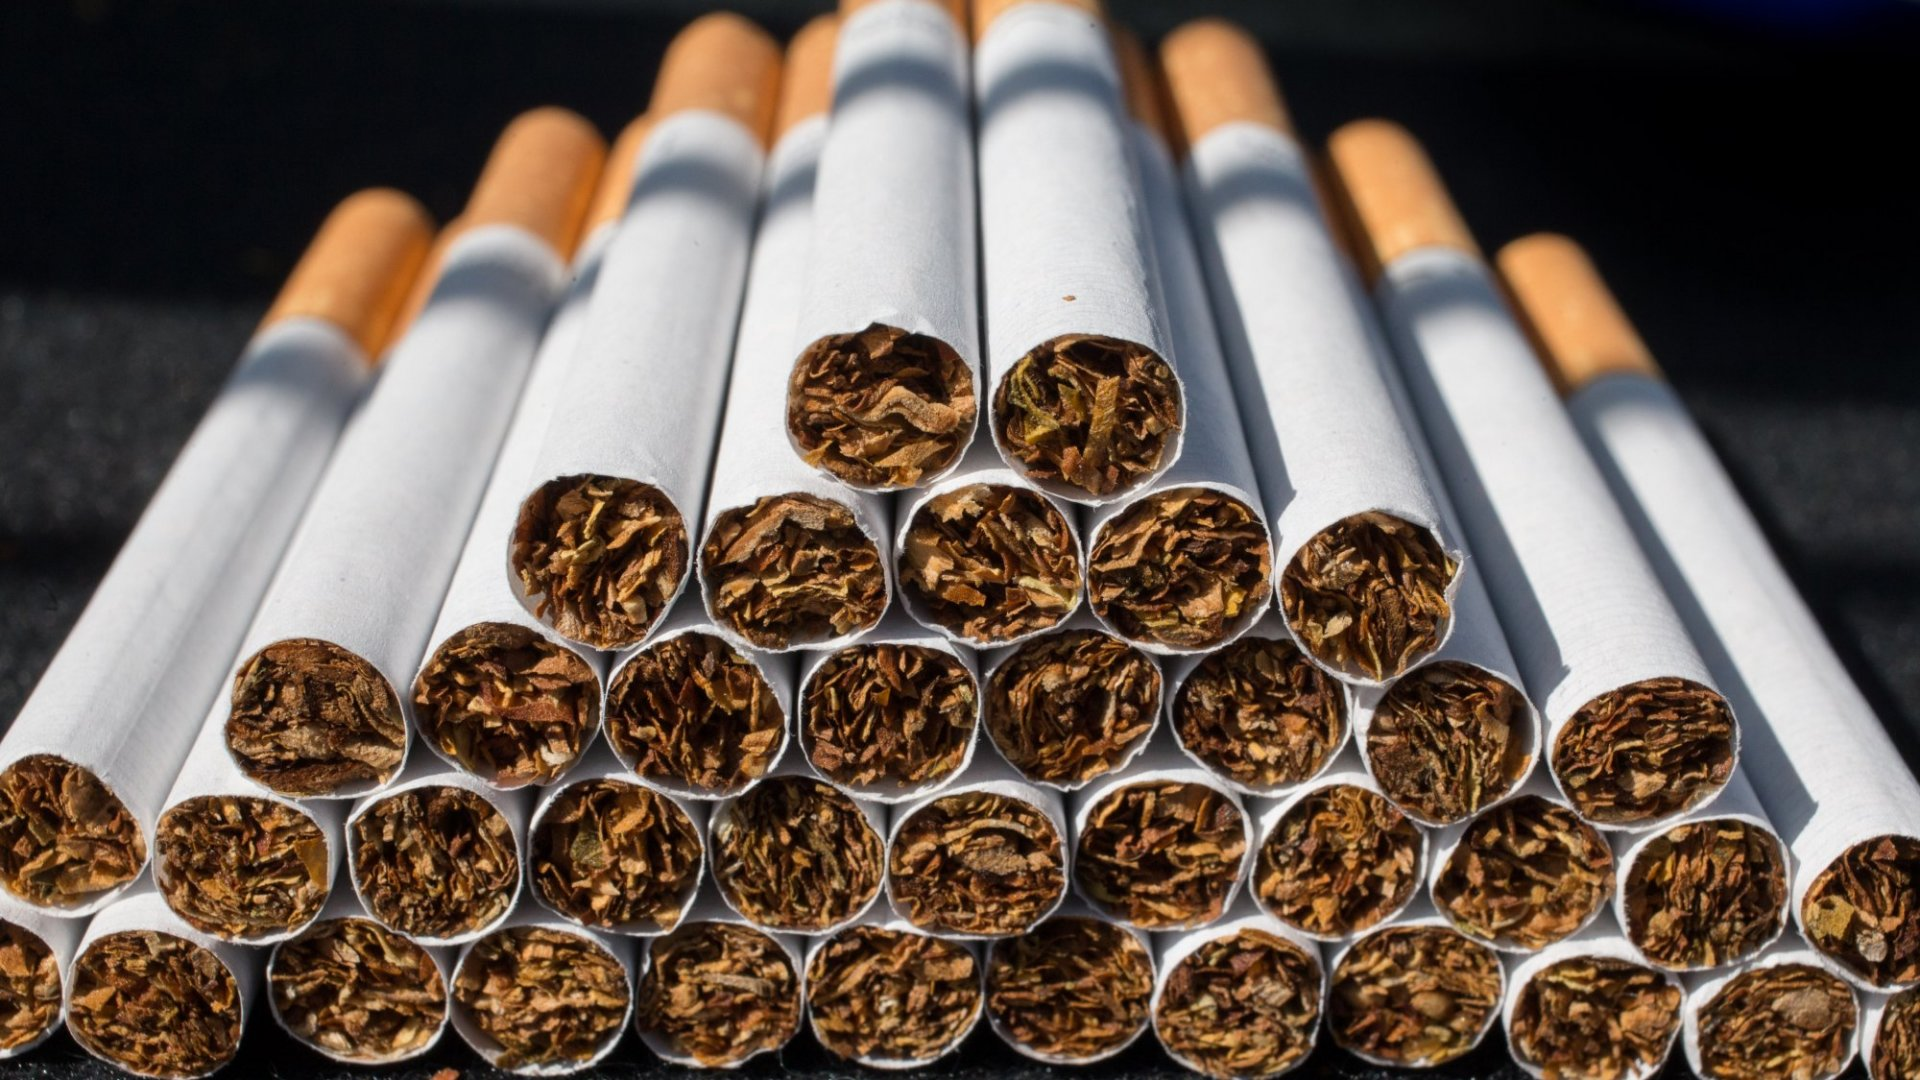 How to Handle and Help Employees Who Smoke (and Those Who Don't)